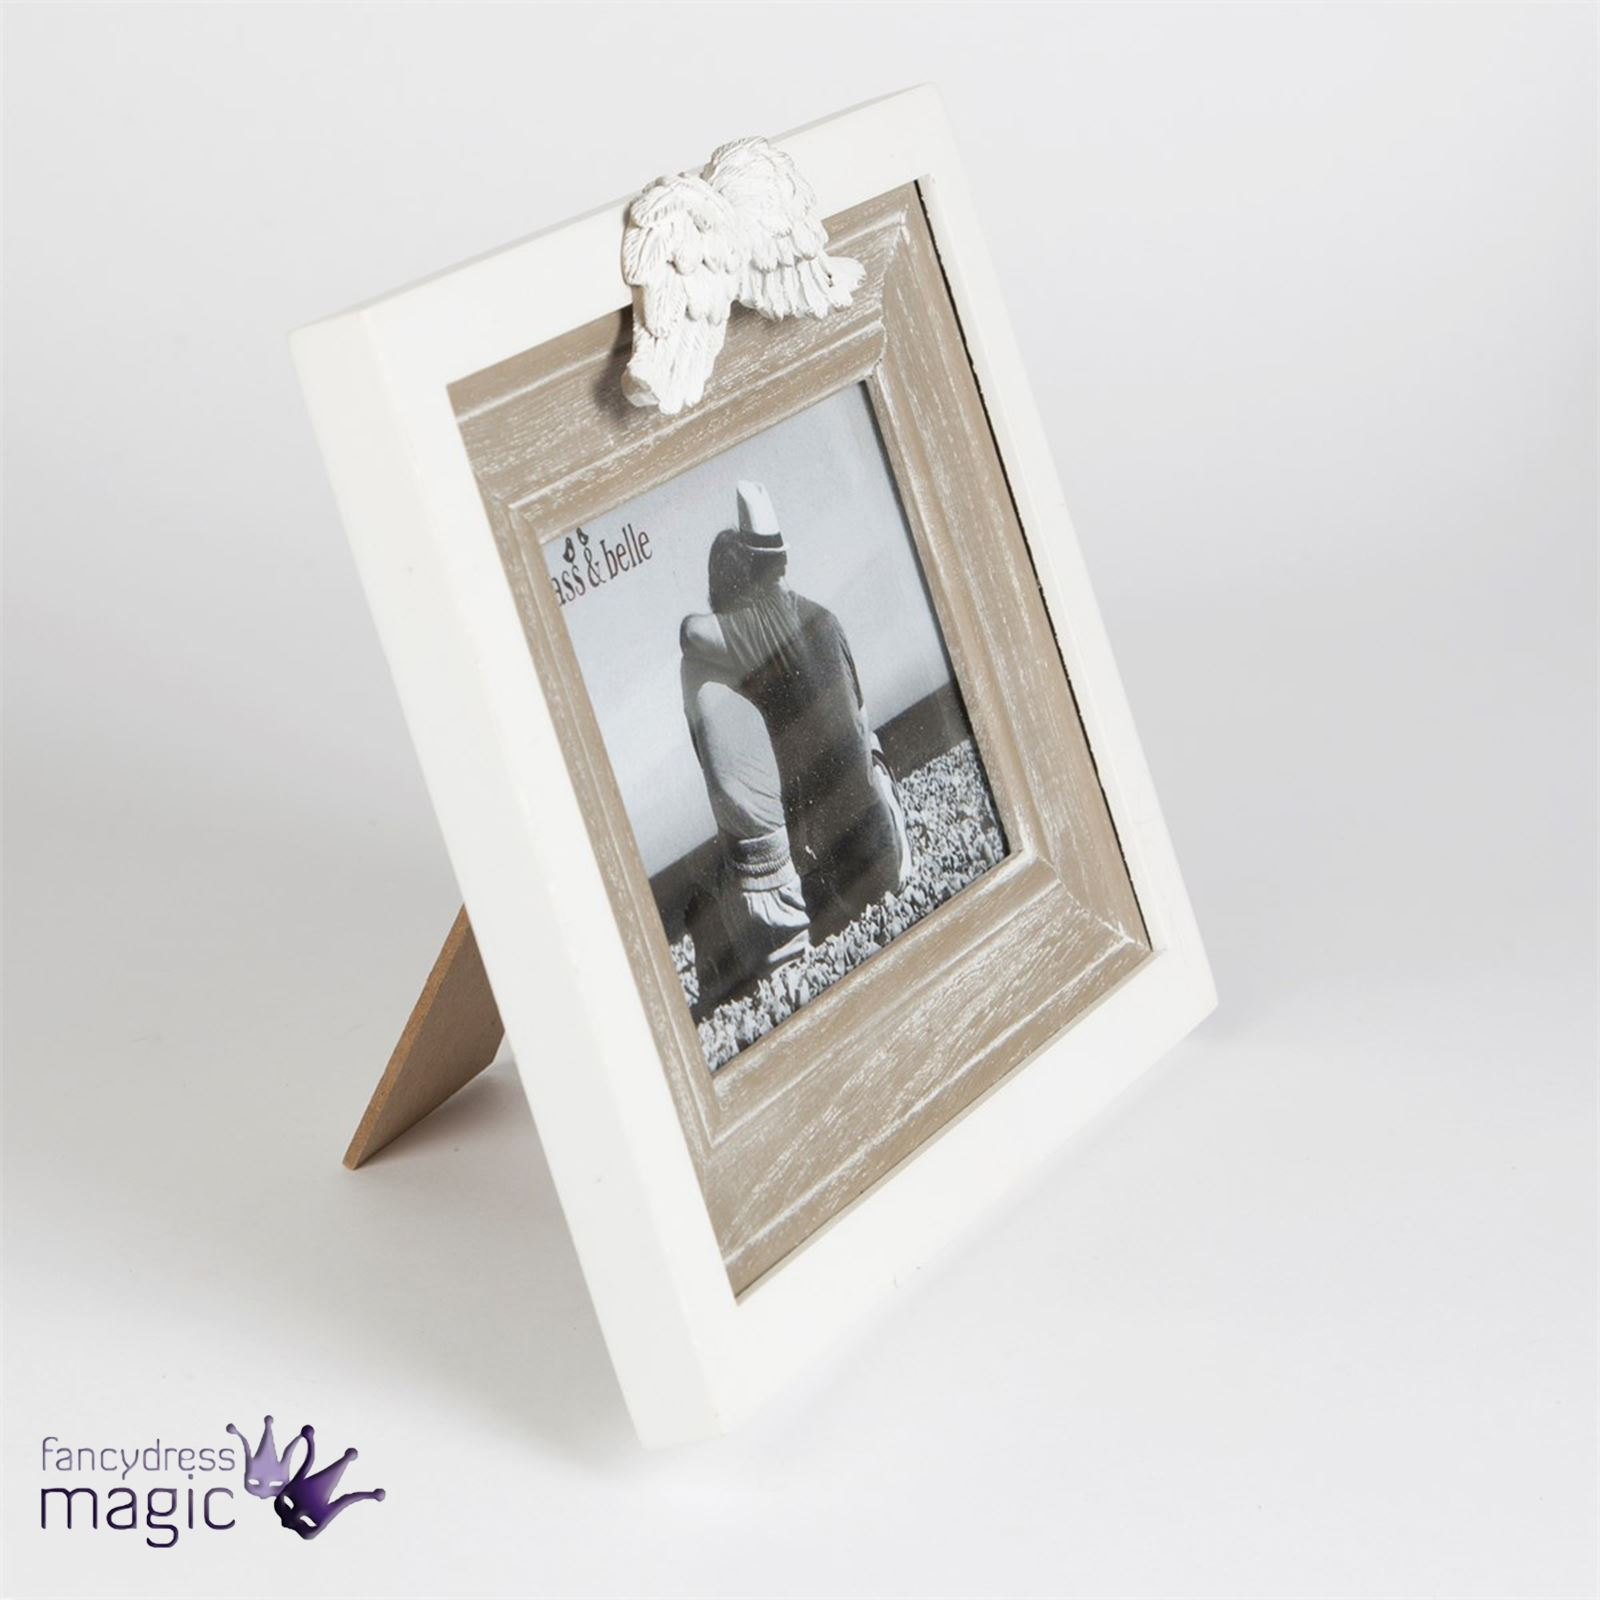 Sass belle wooden angel wings photo picture photograph frame sass amp belle wooden angel wings photo picture jeuxipadfo Image collections